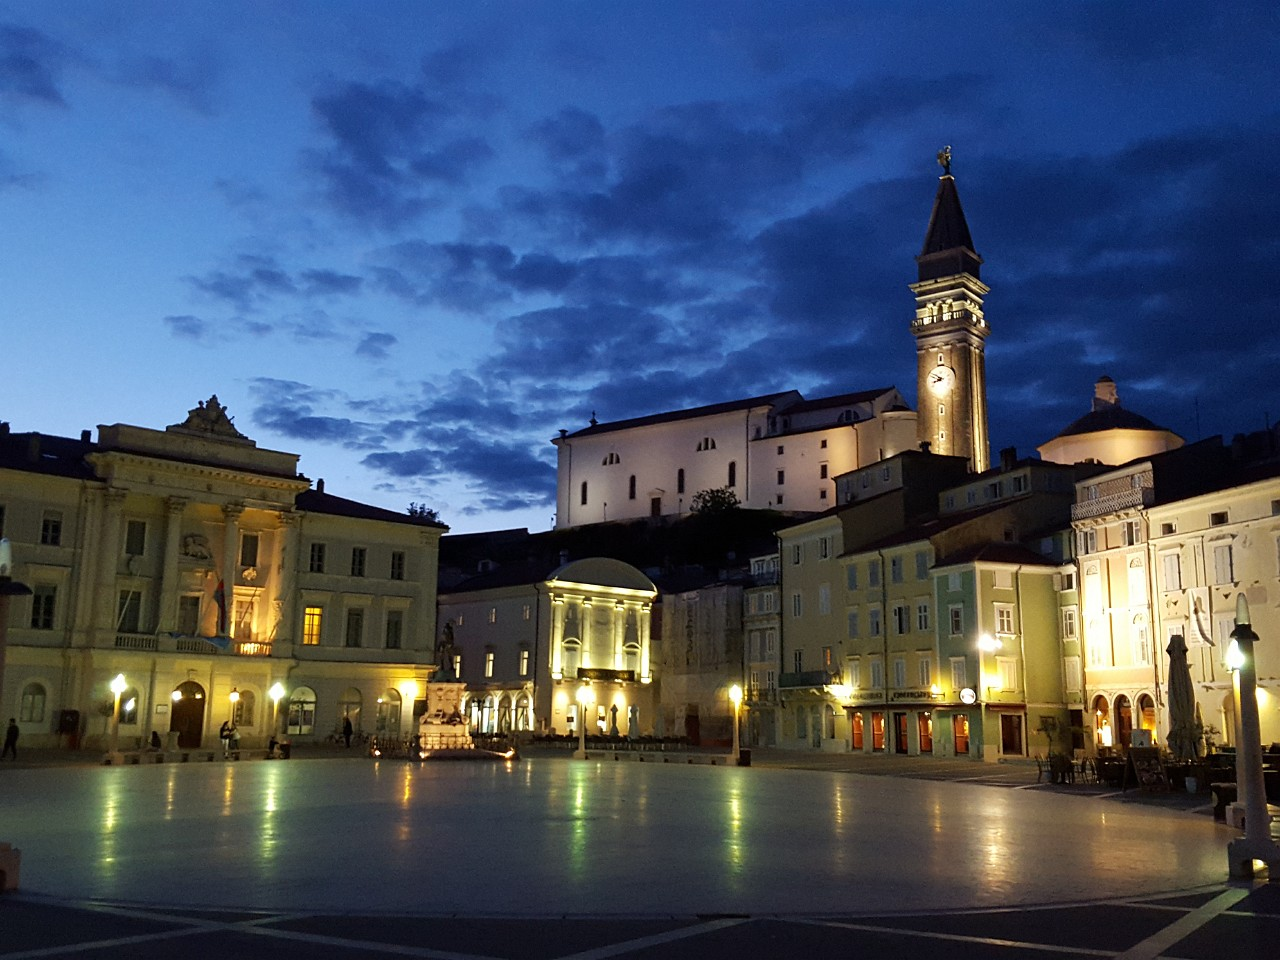 Piran Tartini Square at night